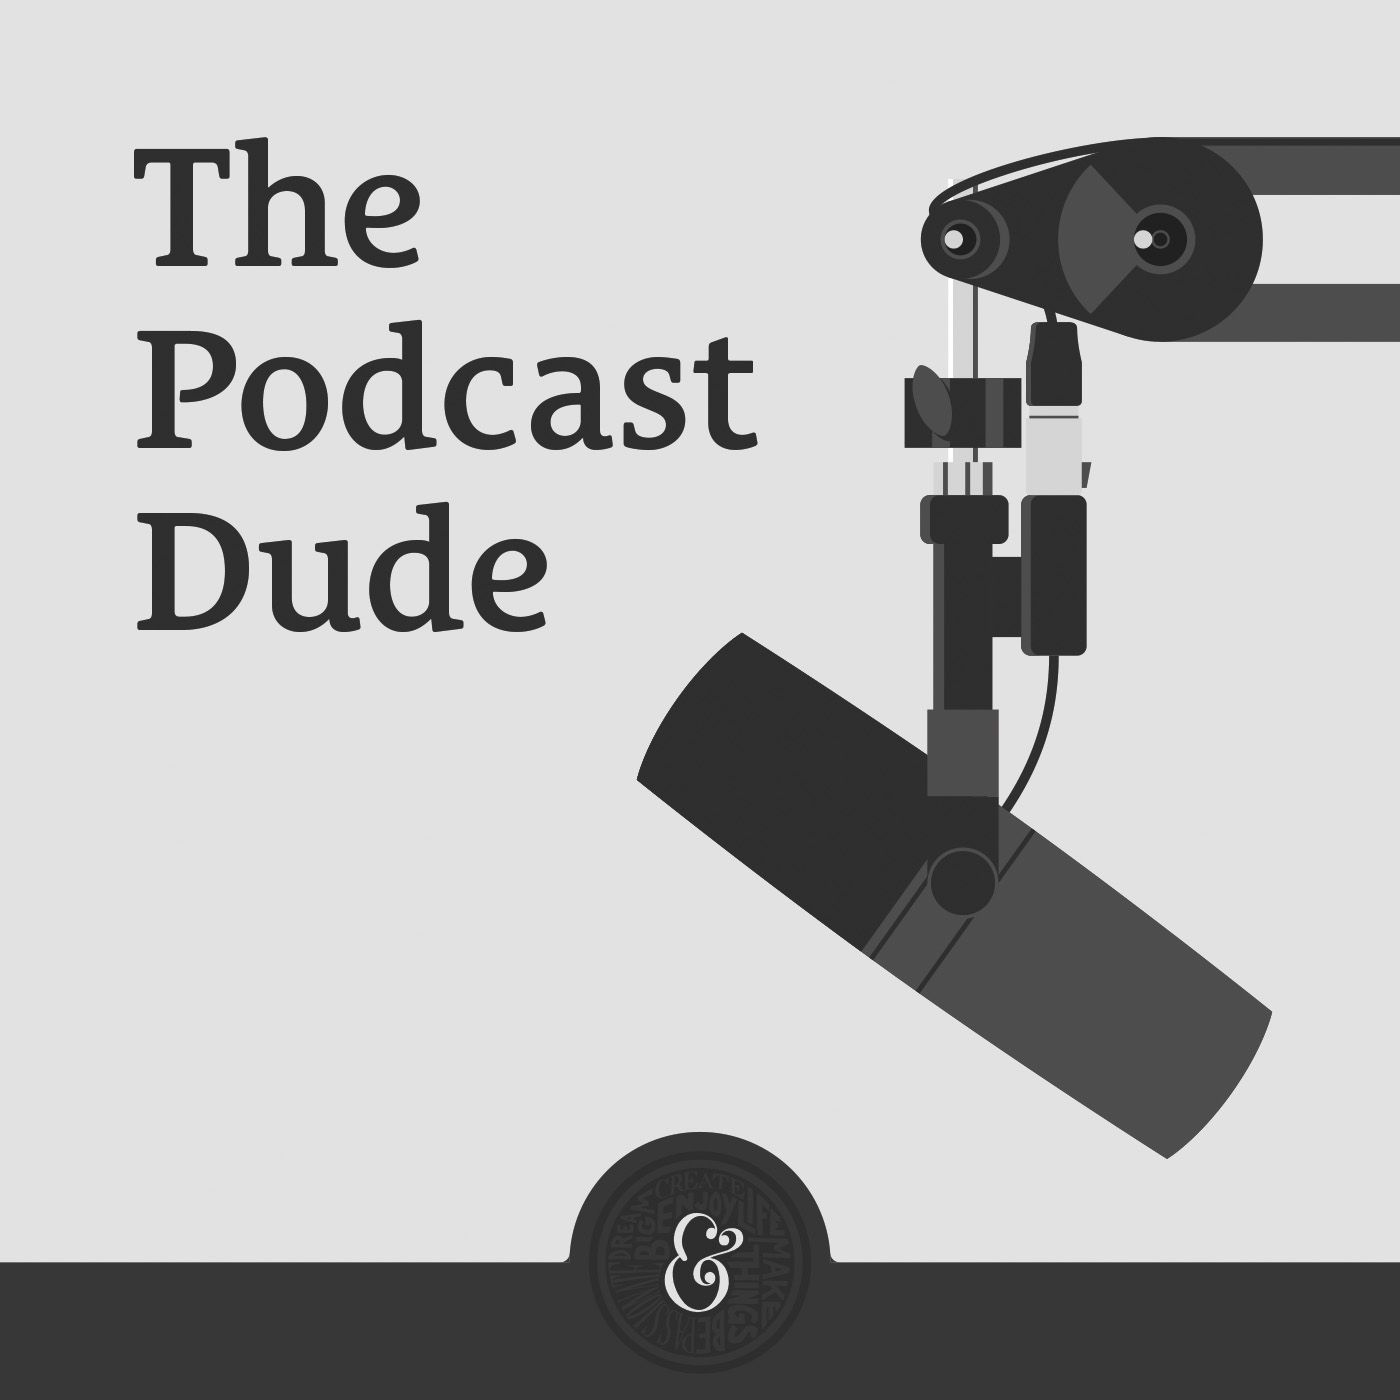 The Podcast Dude